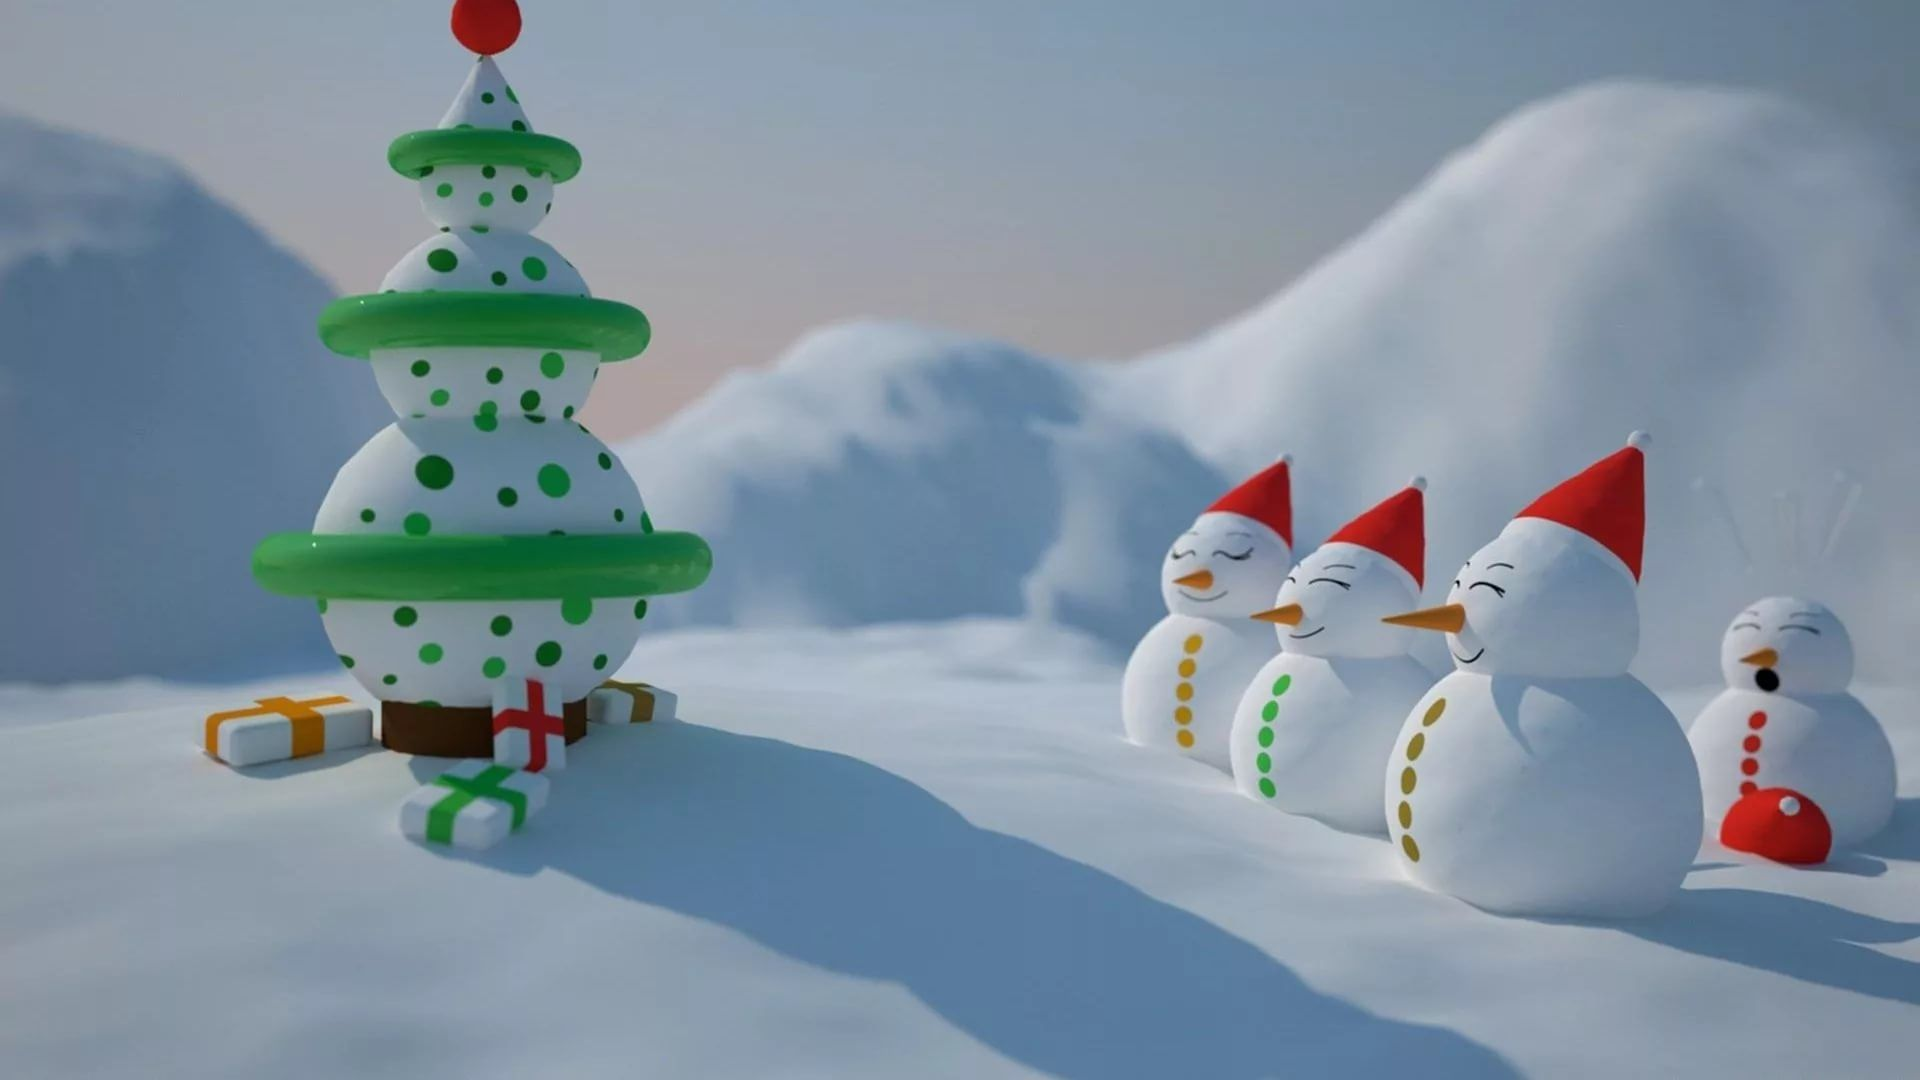 Funny Christmas download free wallpapers for pc in hd